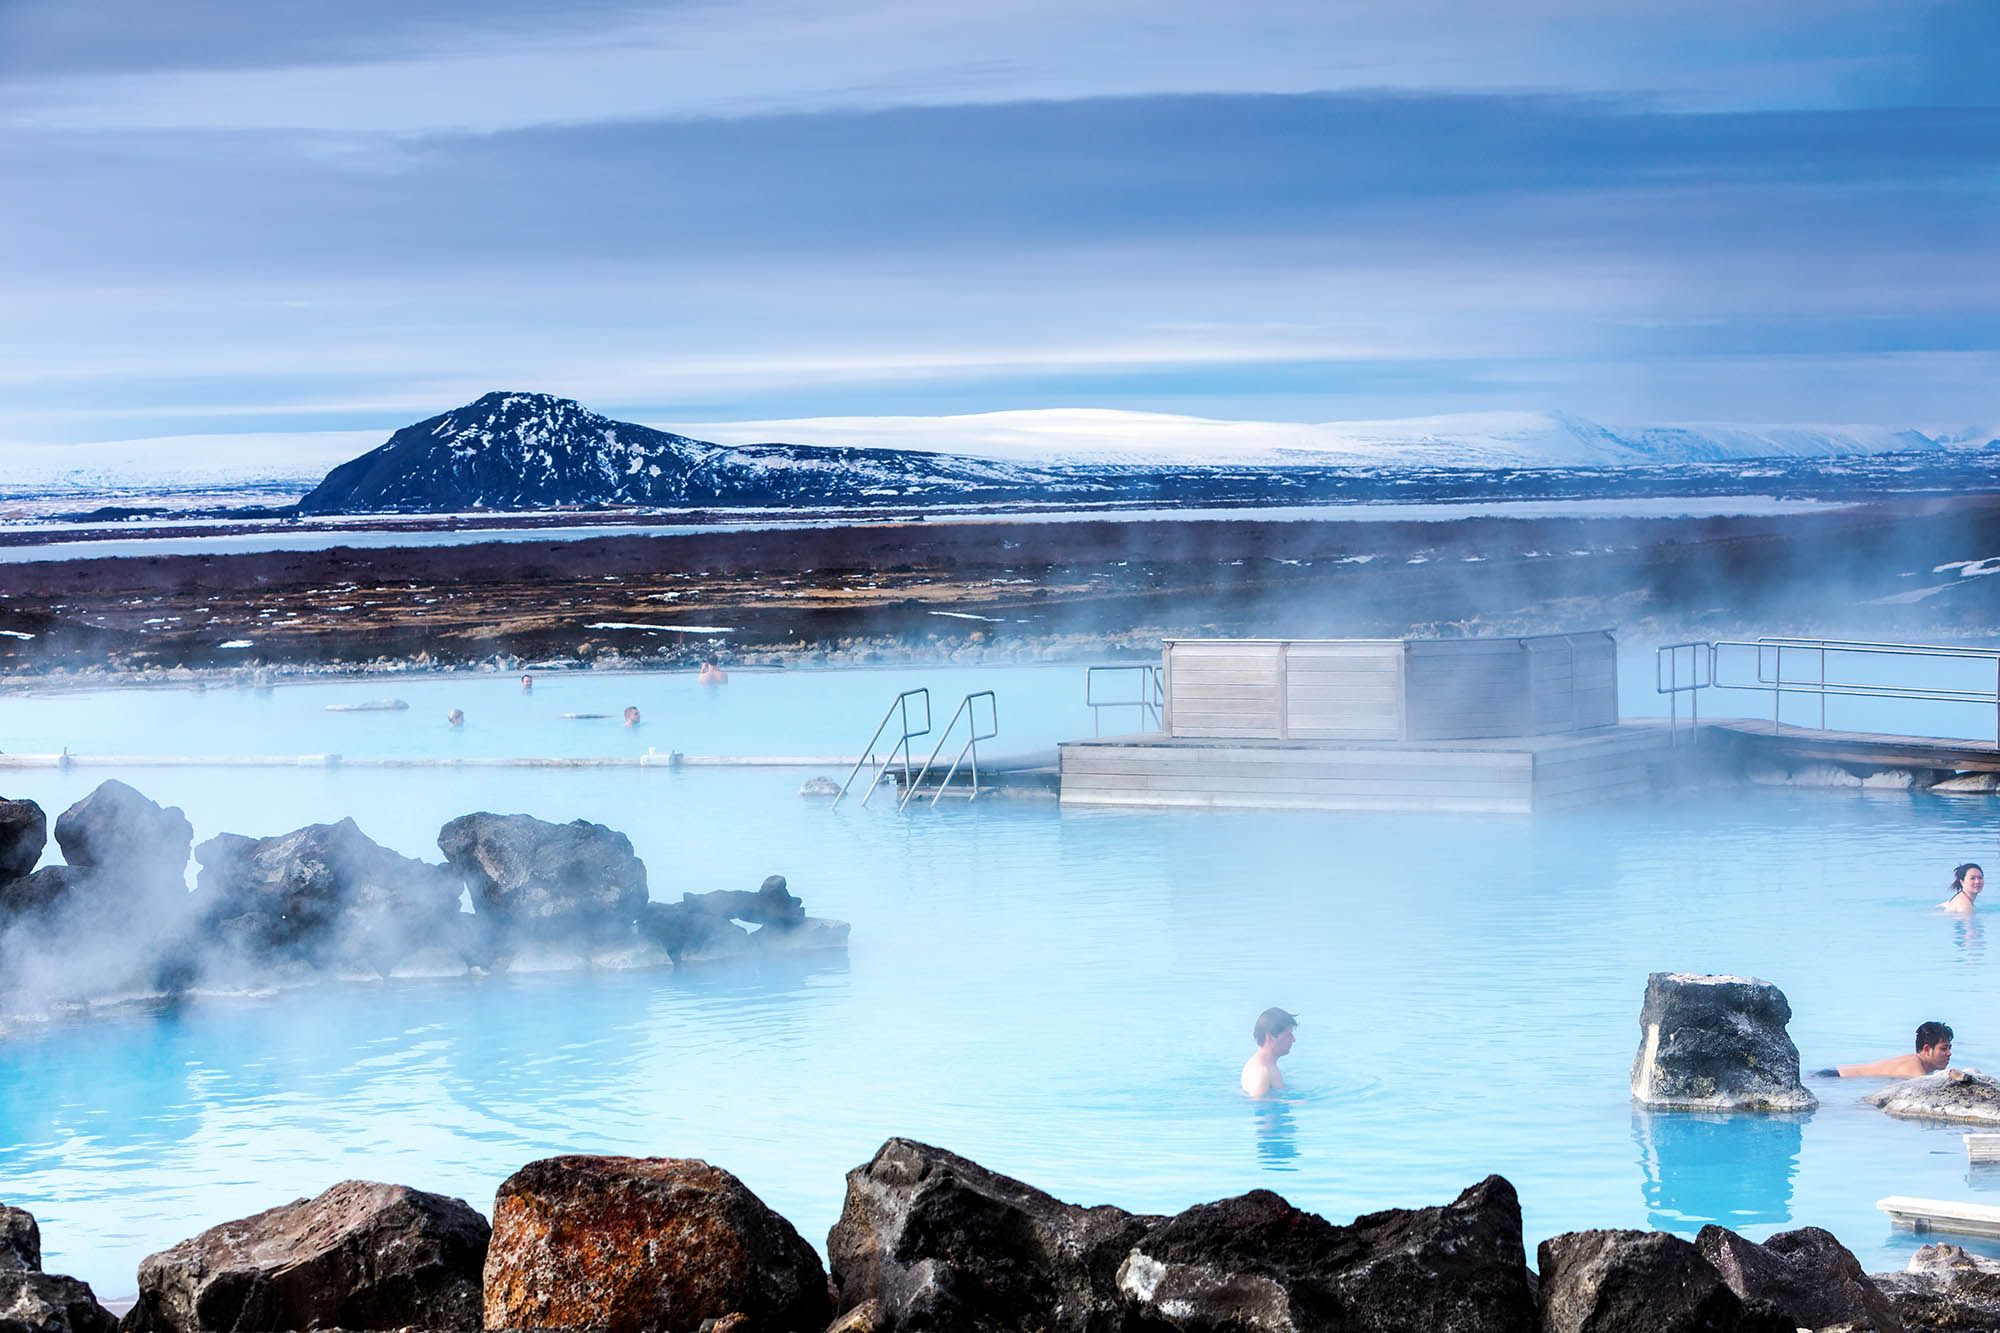 Private Myvatn tour with visit of the Myvatn nature baths